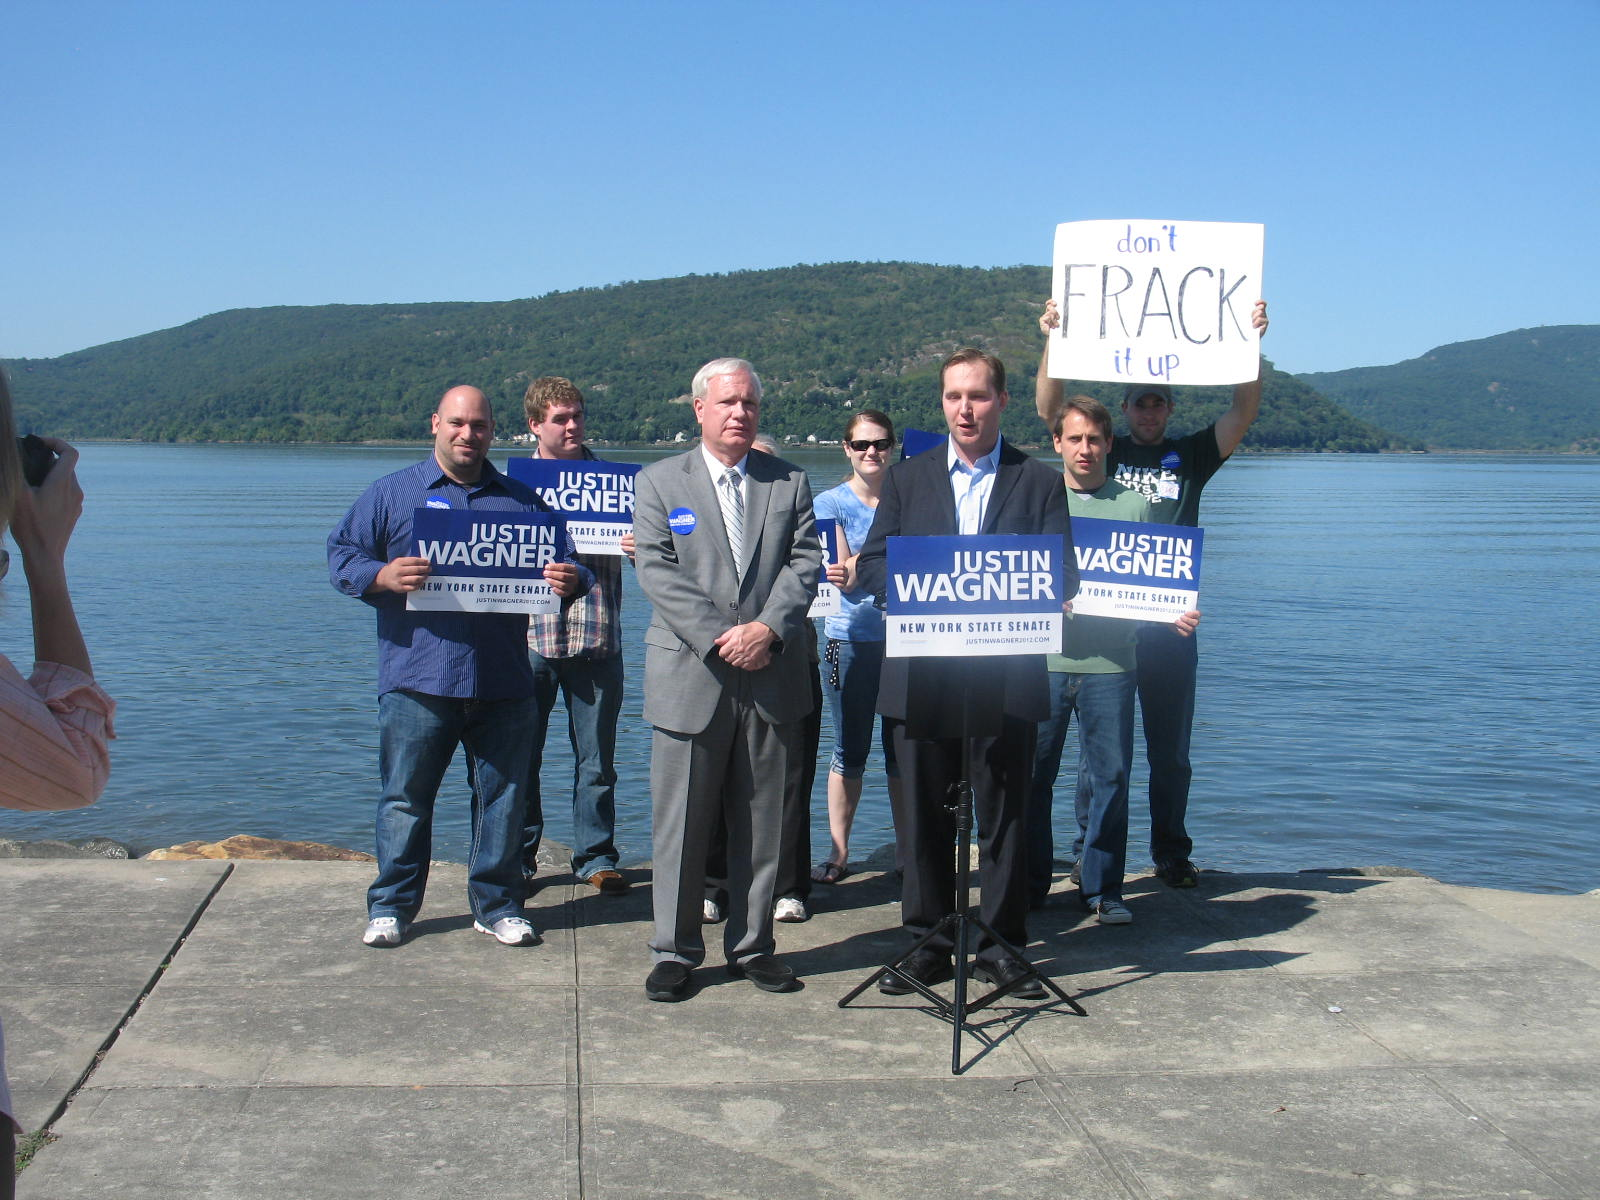 Sept. 25 Justin Wagner Rally Pix